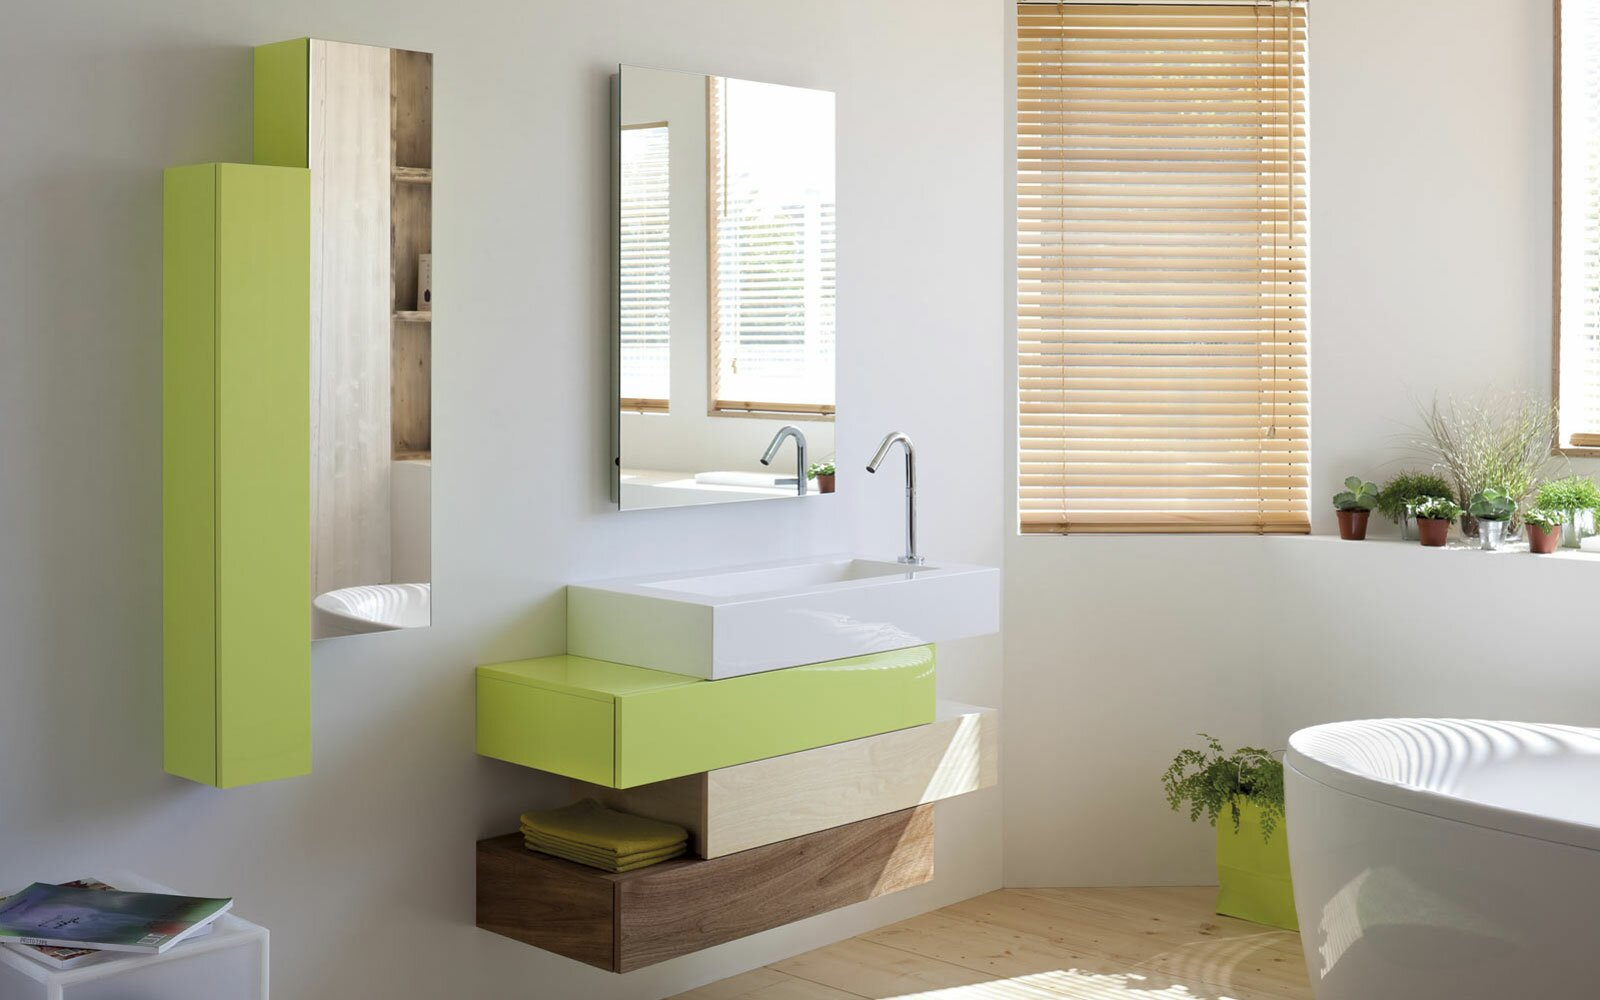 Decoration Chambre Zen Bambou : Top modern bathroom design examples mostbeautifulthings